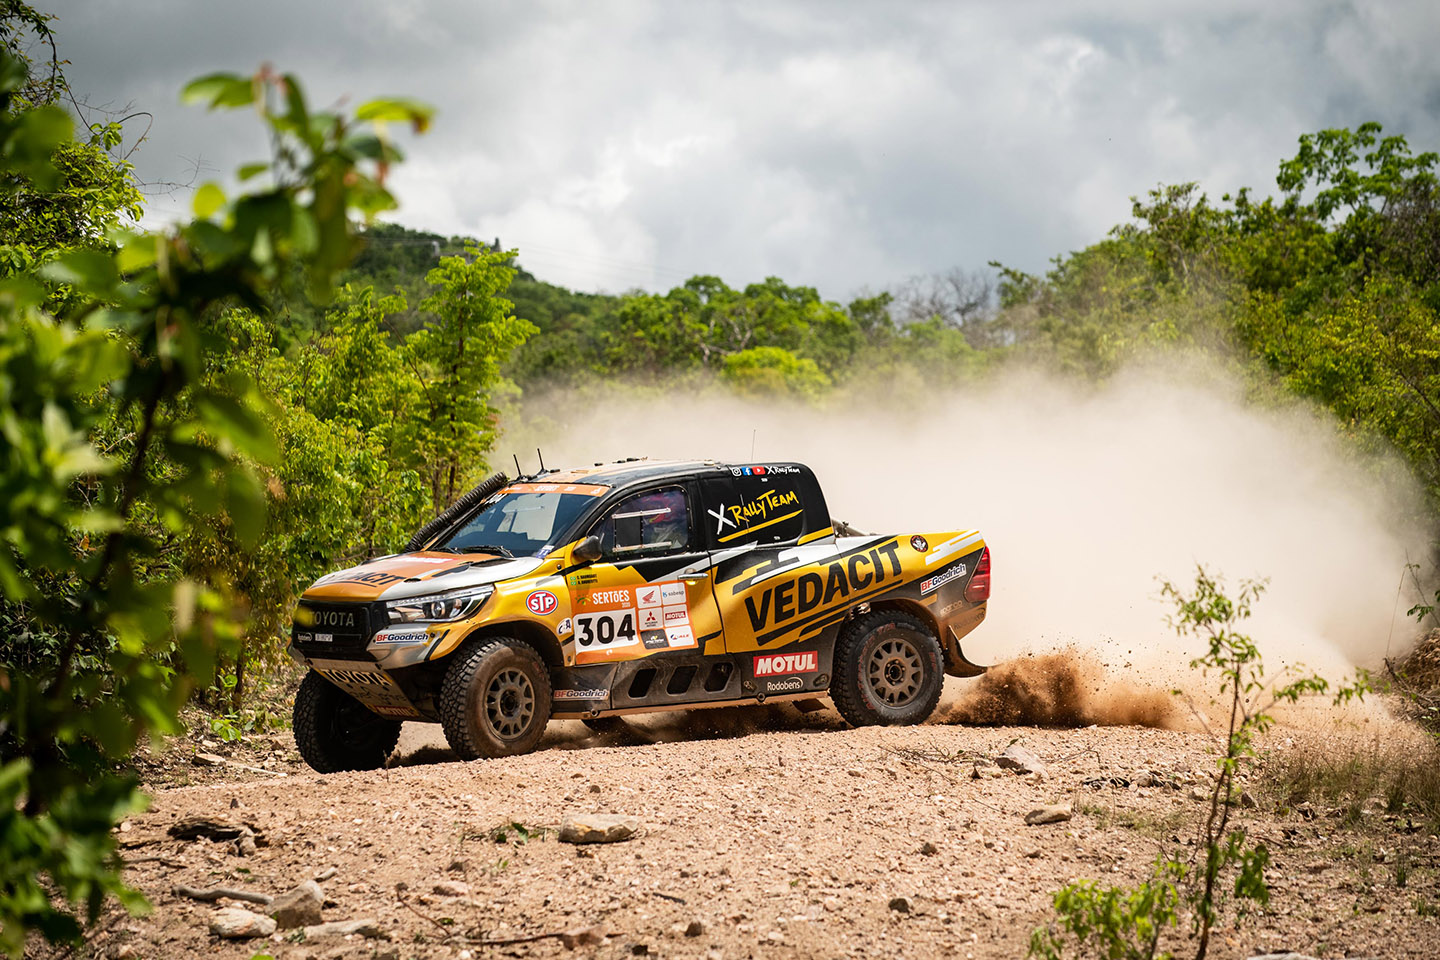 Sertões: X Rally Team wins another special stage with Marcos Baumgart / Kleber Cincea